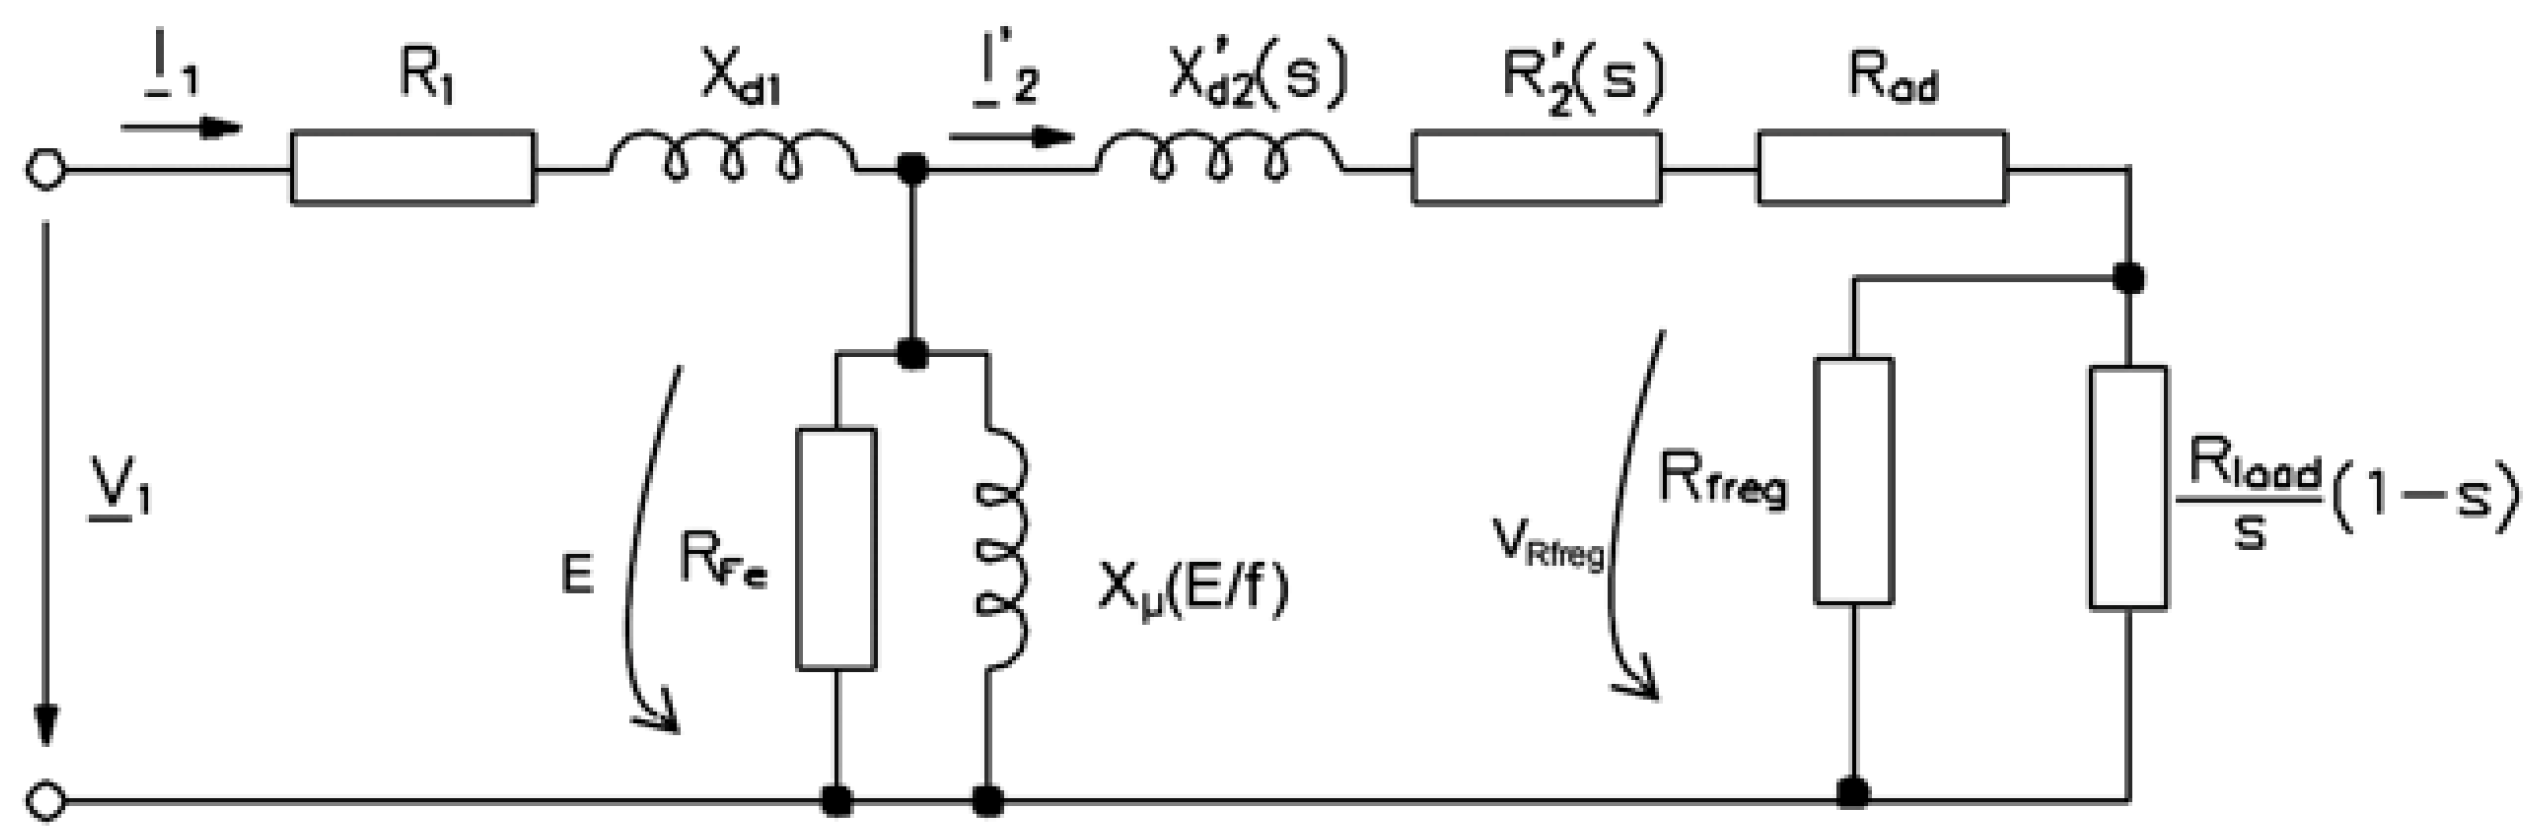 Energies Free Full Text Permanent Magnet Synchronous Motor With Equivalent Circuit Diagram Of The Induction No